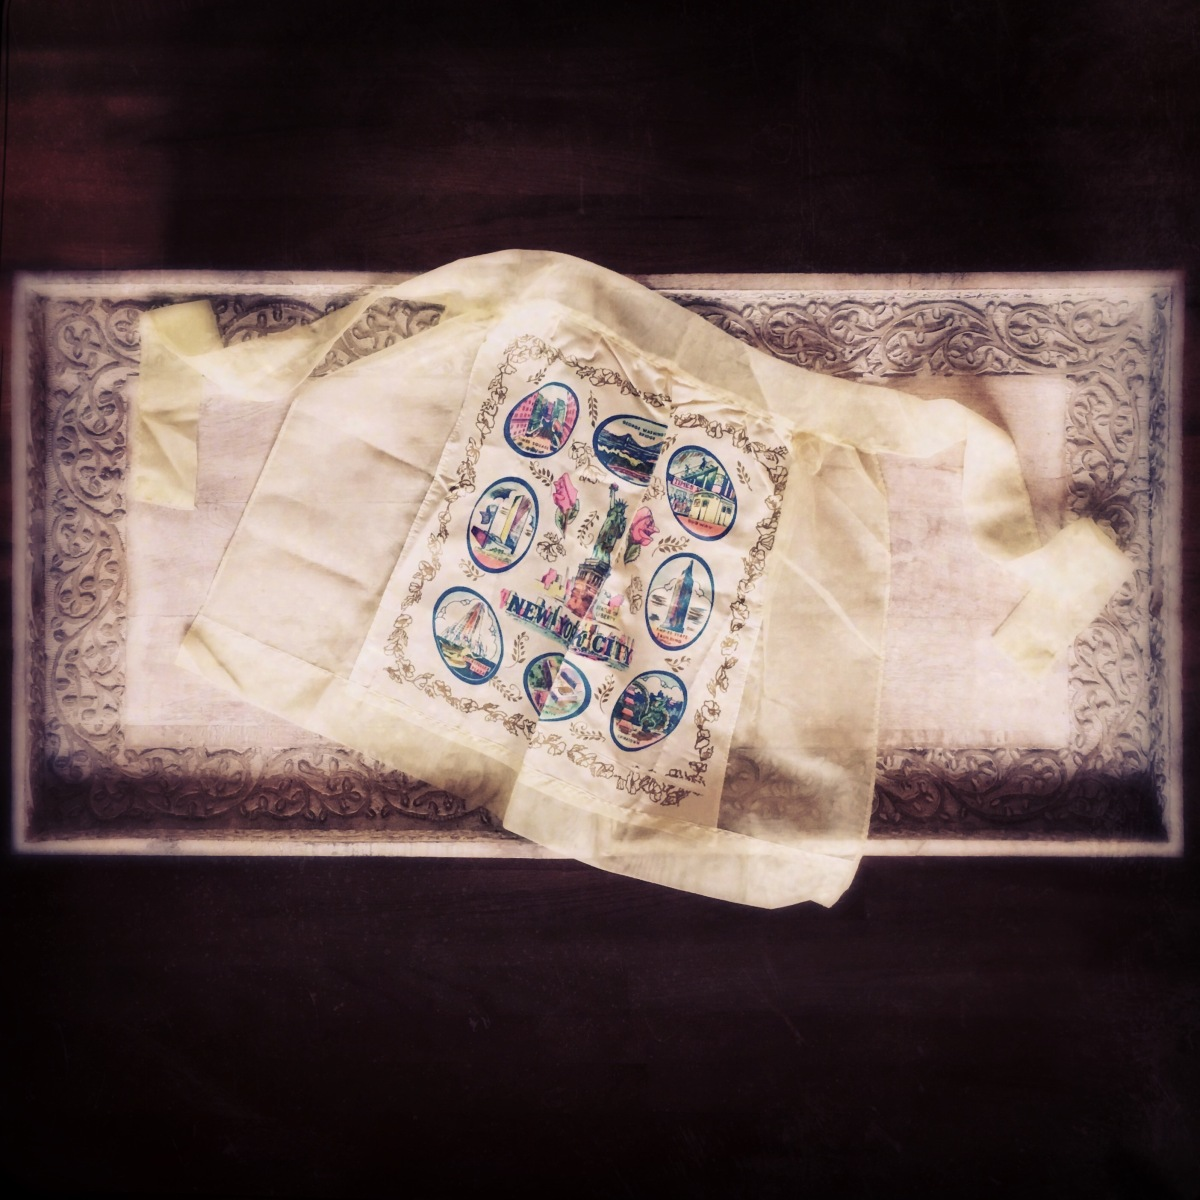 vintage apron 1964. photograph ©2017 Lucy Mathews Heegaard.